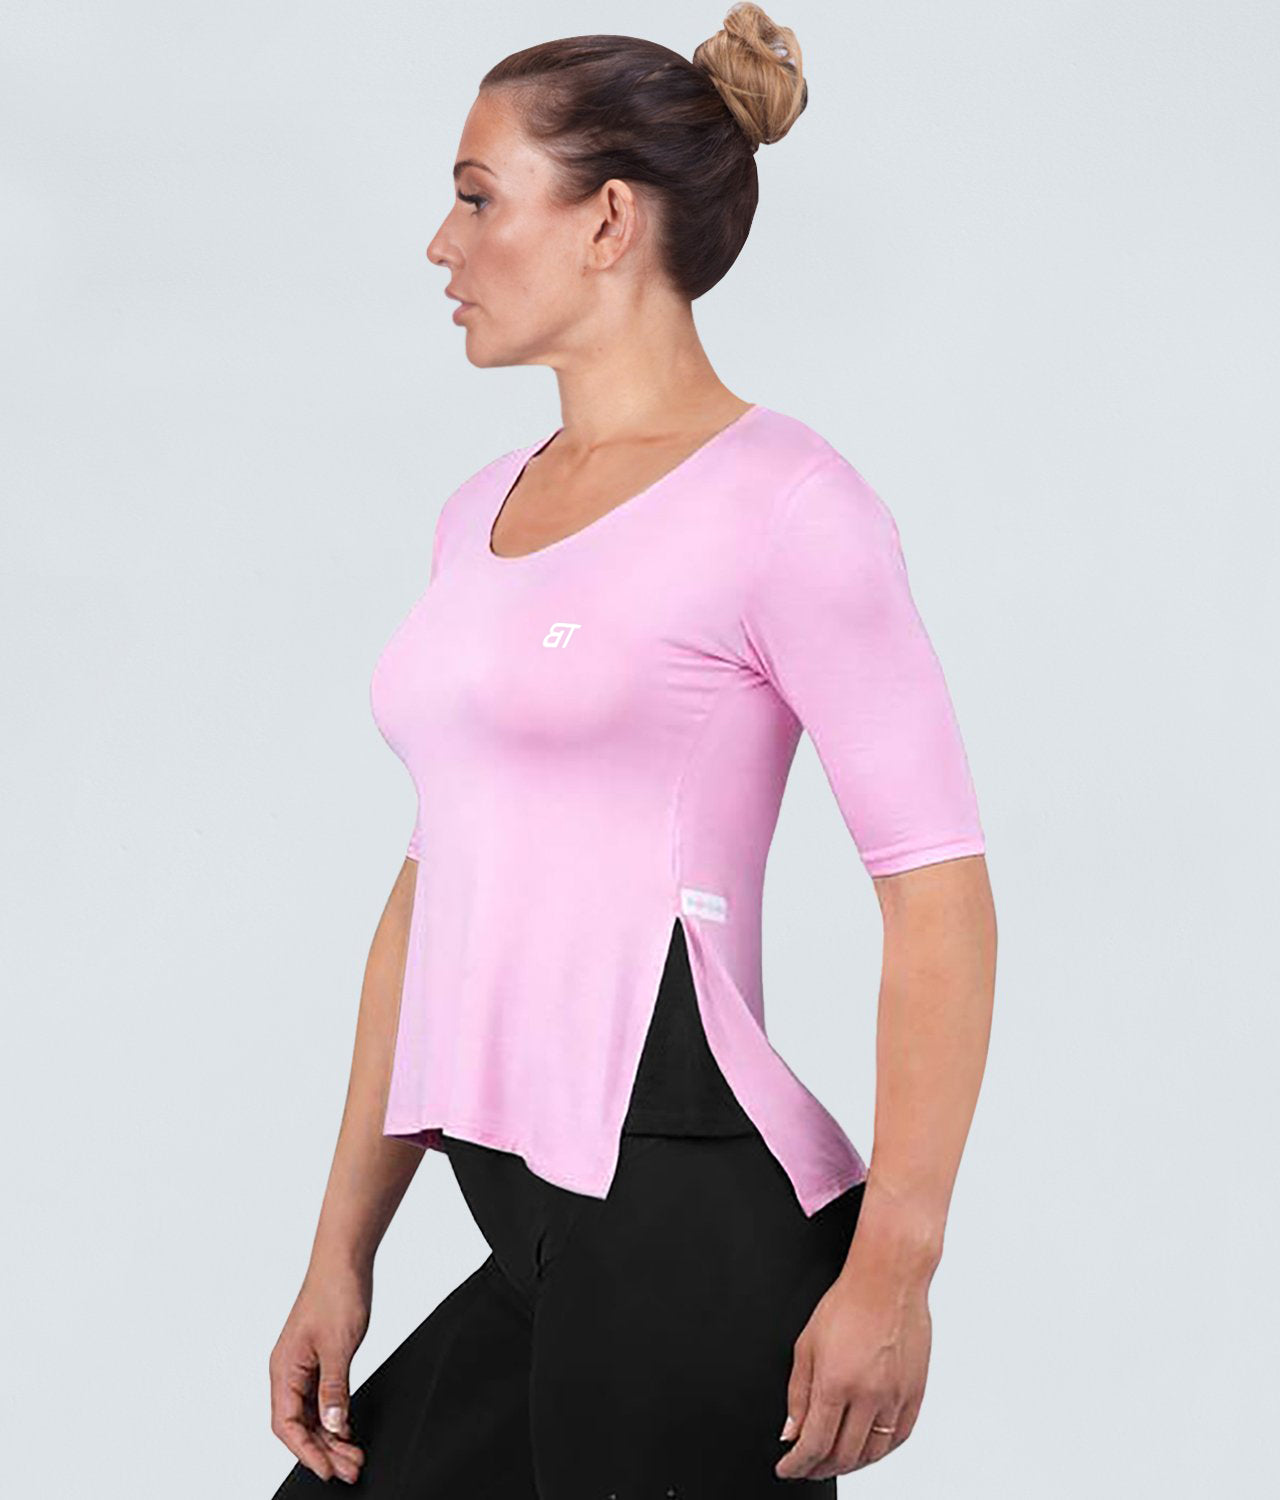 Born Tough True Form Sheer Extended Front & Back Hem Pink Short Sleeve Gym Workout Shirt for Women